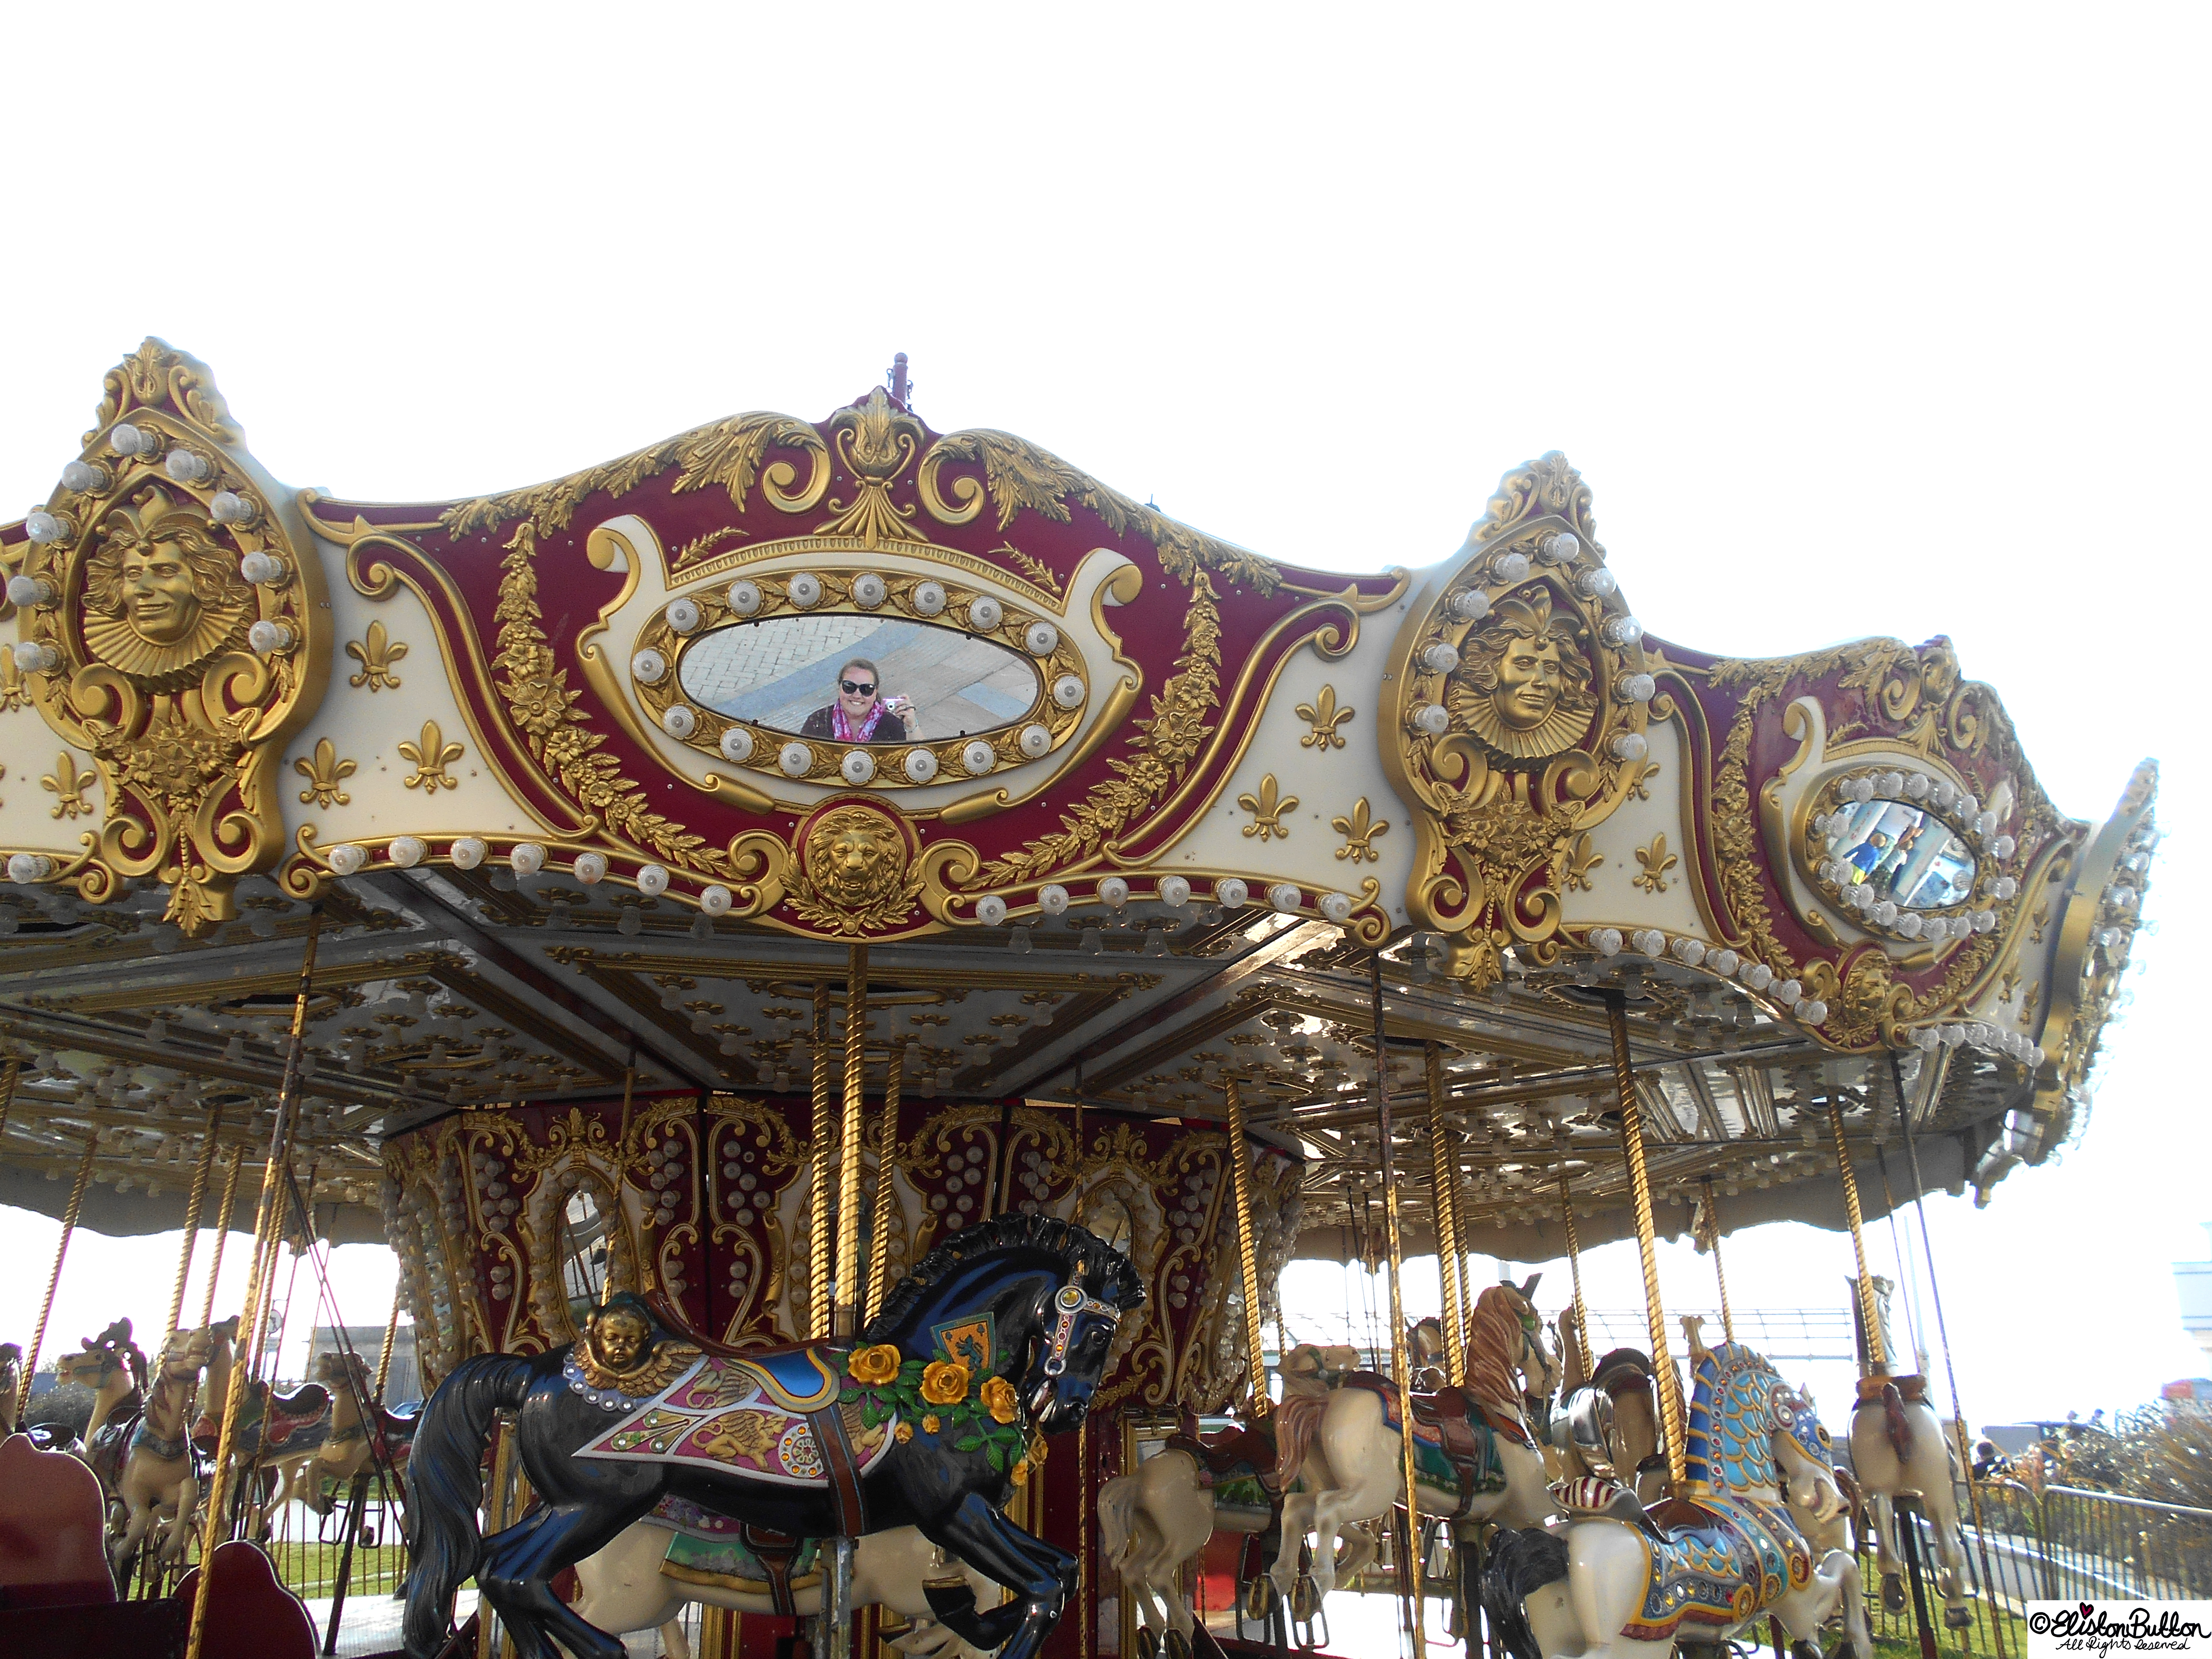 Merry-Go-Round - The Great British Seaside (and an Eliston Button Autumn Sale) at www.elistonbutton.com - Eliston Button - That Crafty Kid – Art, Design, Craft & Adventure.